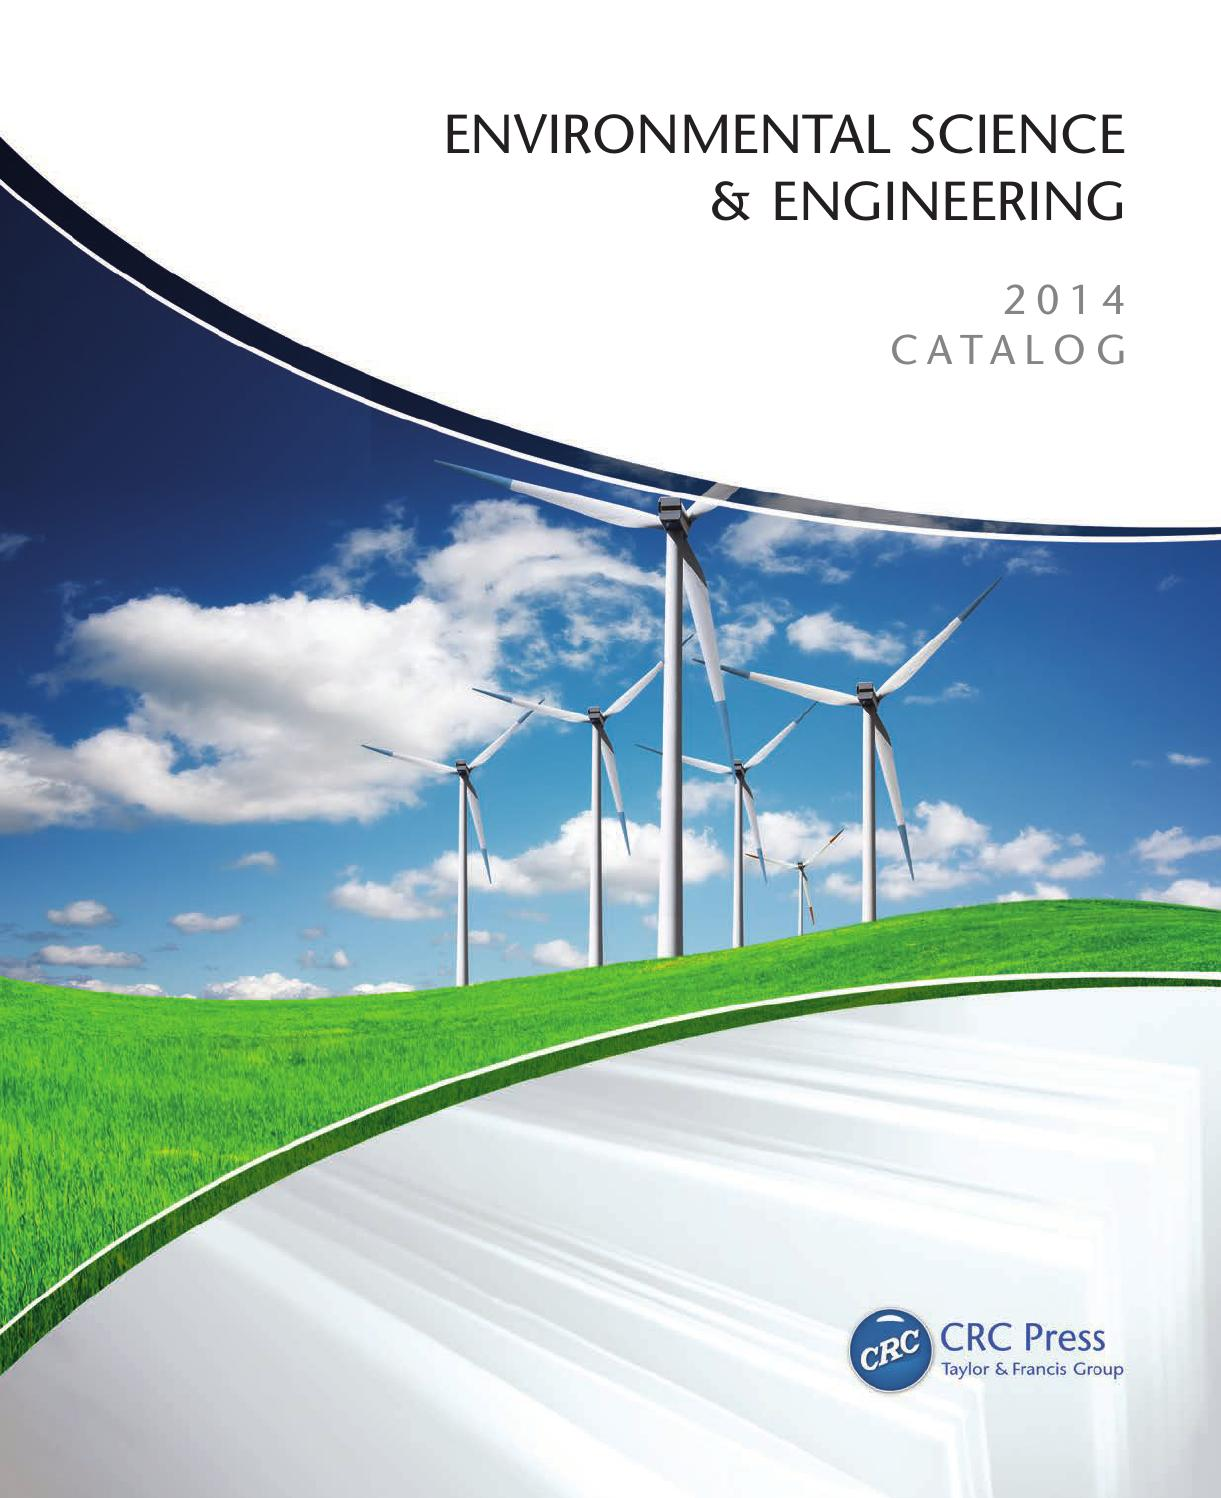 Environmental science engineering by crc press issuu fandeluxe Images